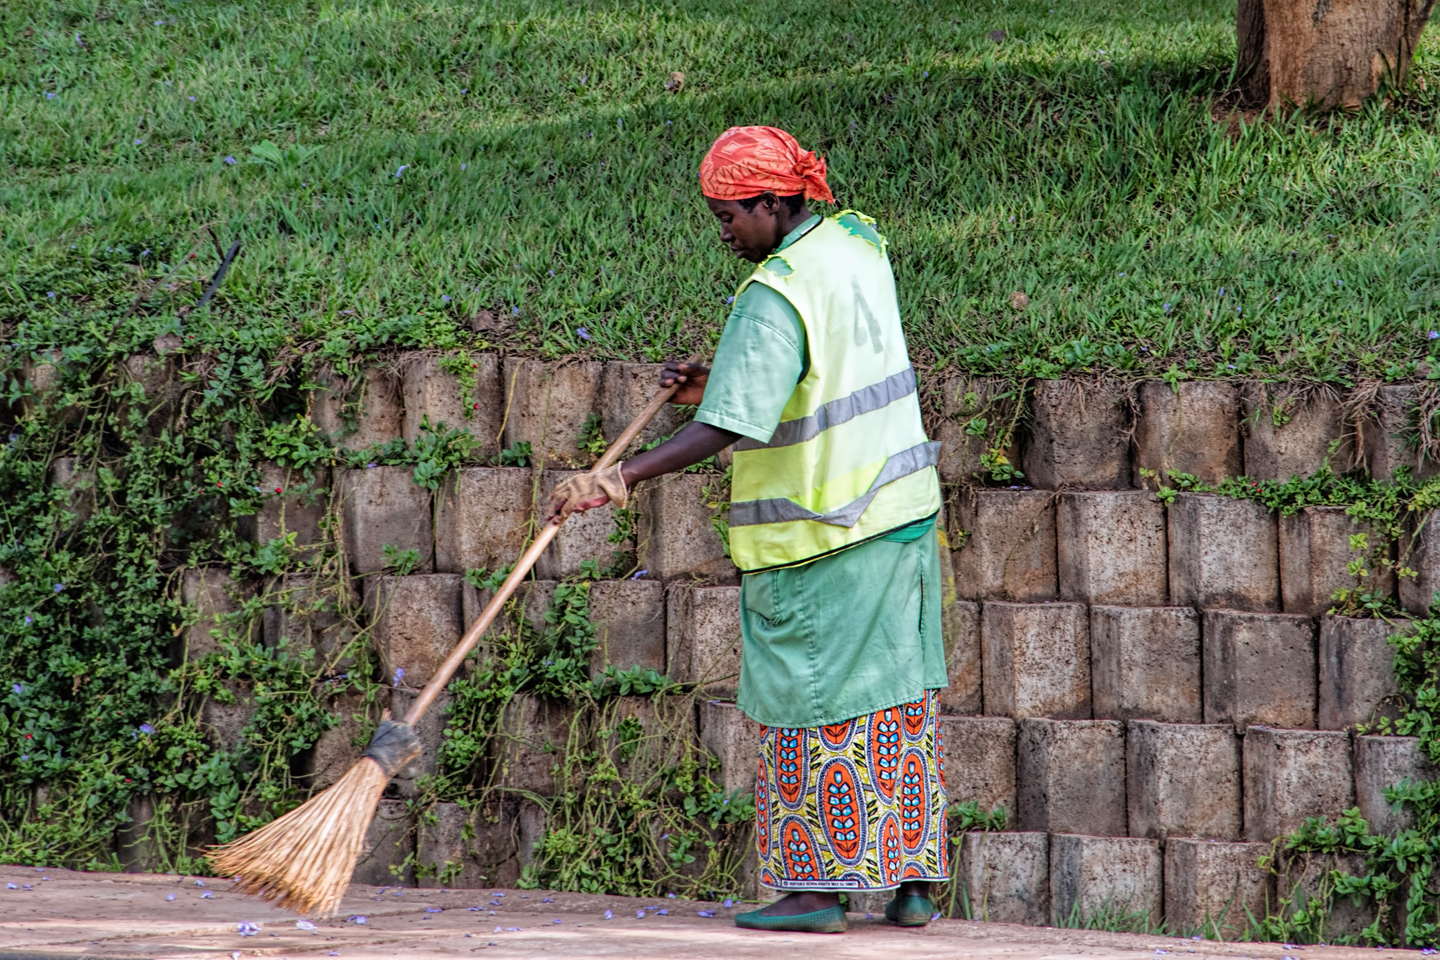 Kigali The Cleanest City; The Unsung Heroines